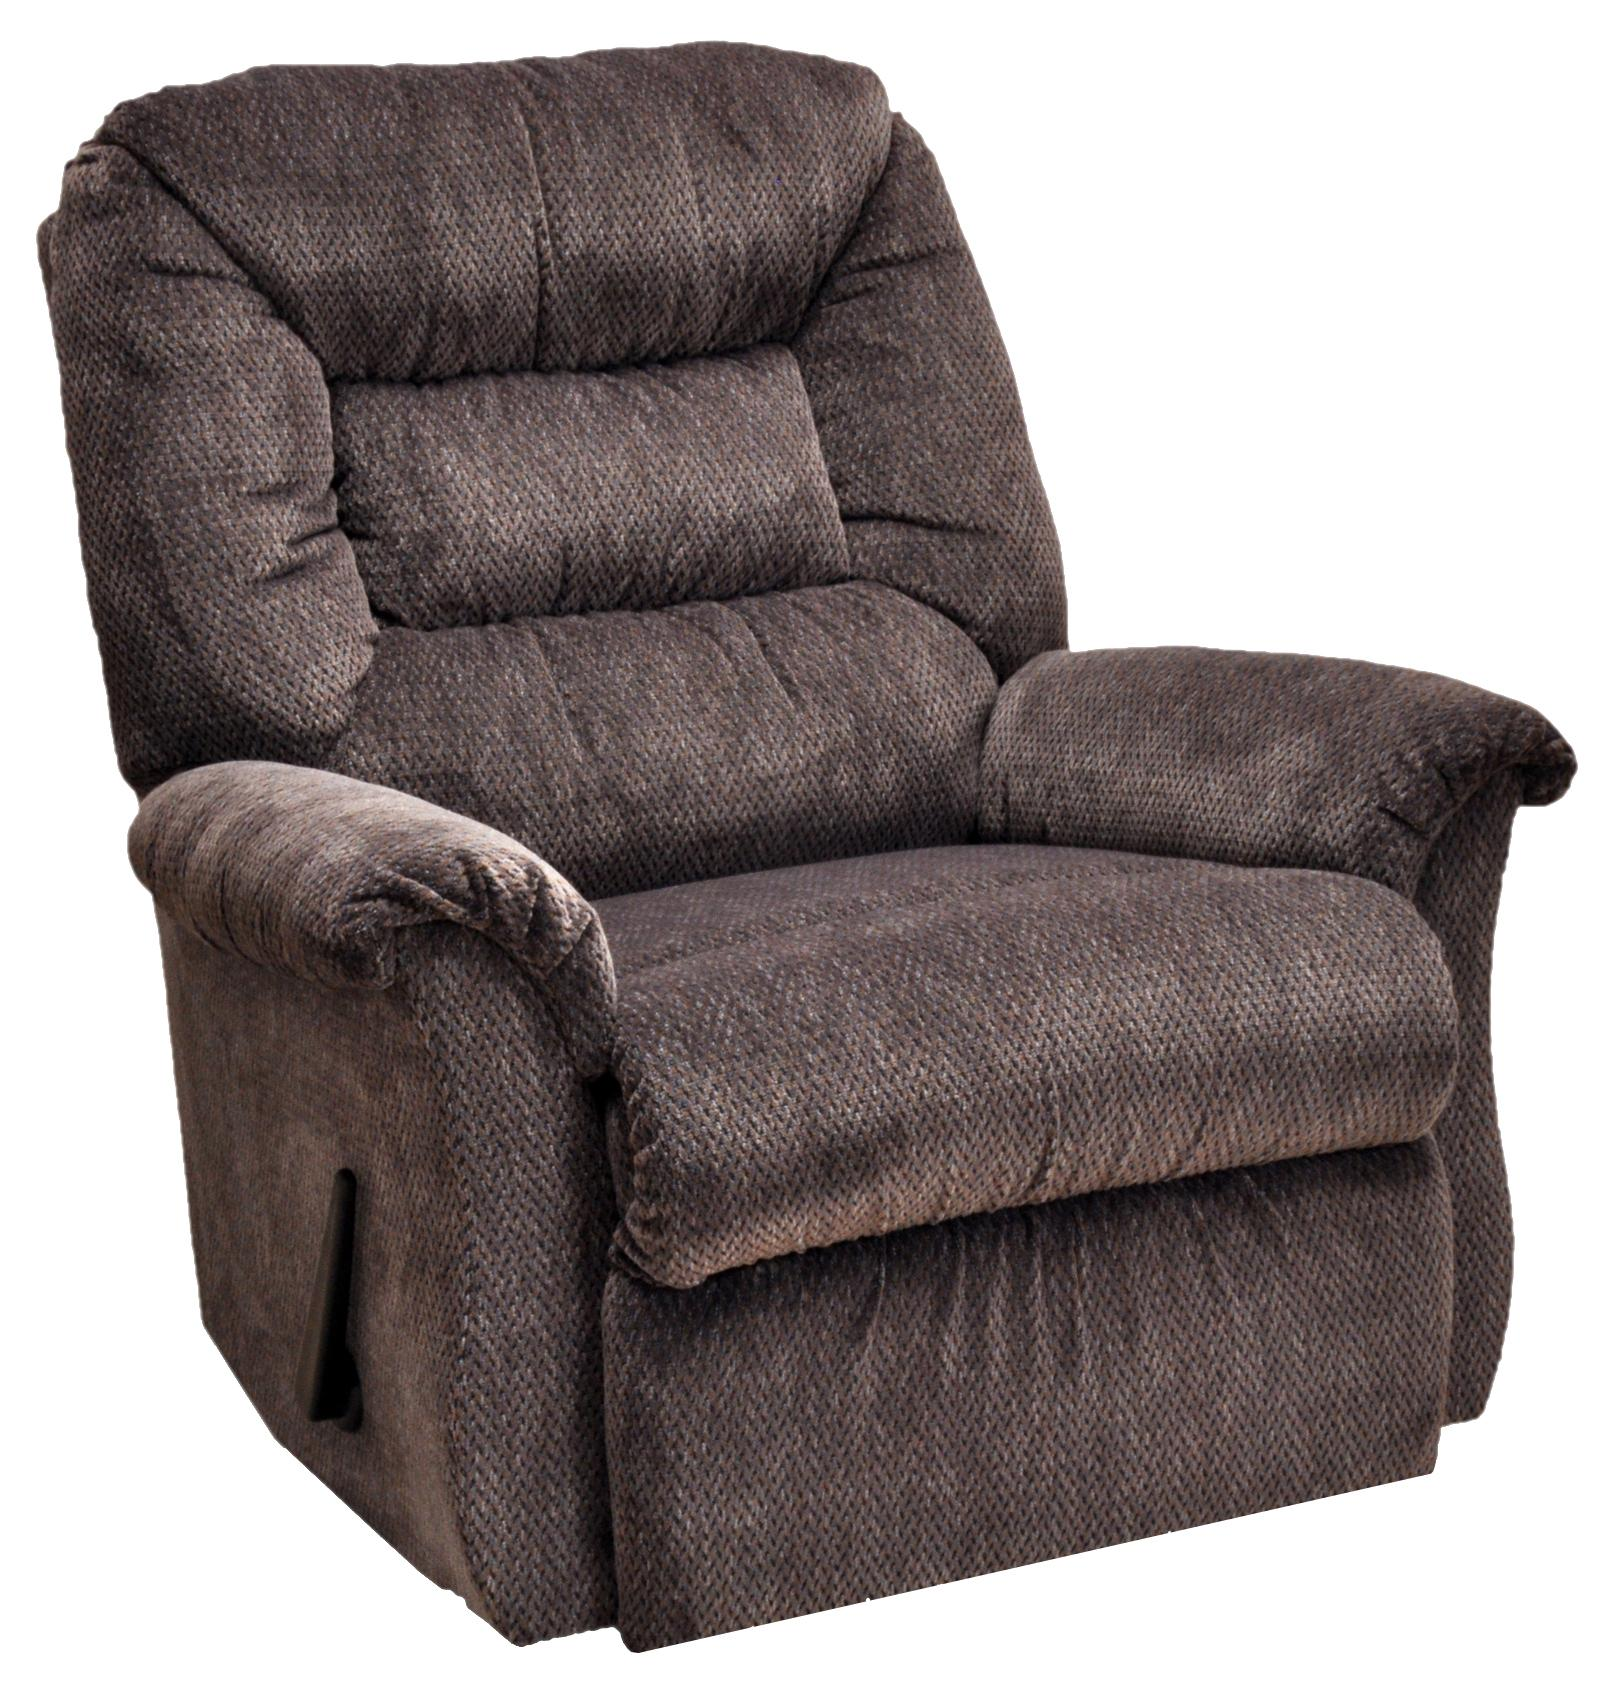 Franklin Rocker Recliners Chaise Rocker Recliner with Casual ...